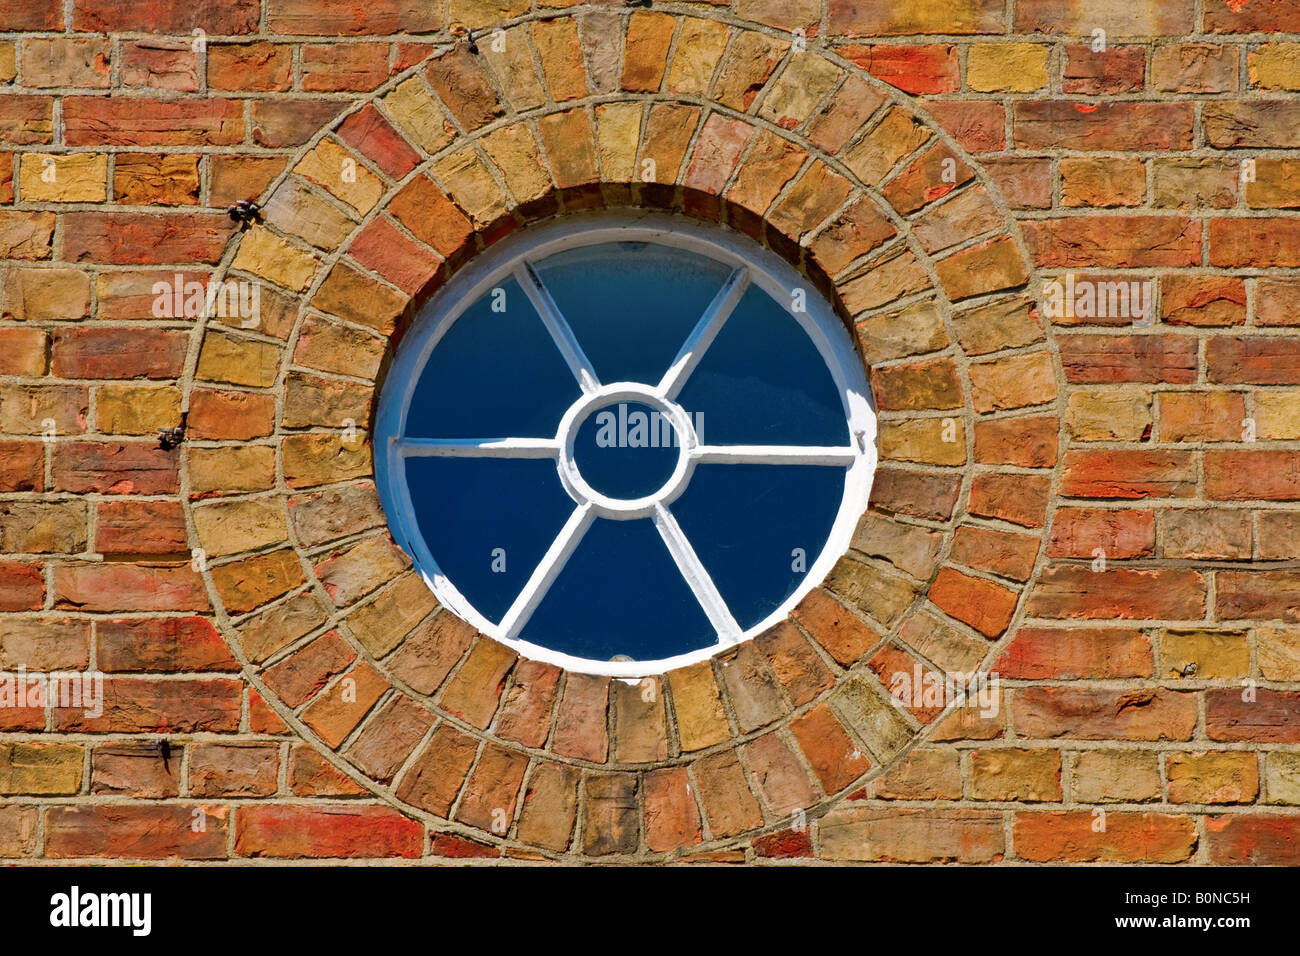 A round wooden window - Stock Image